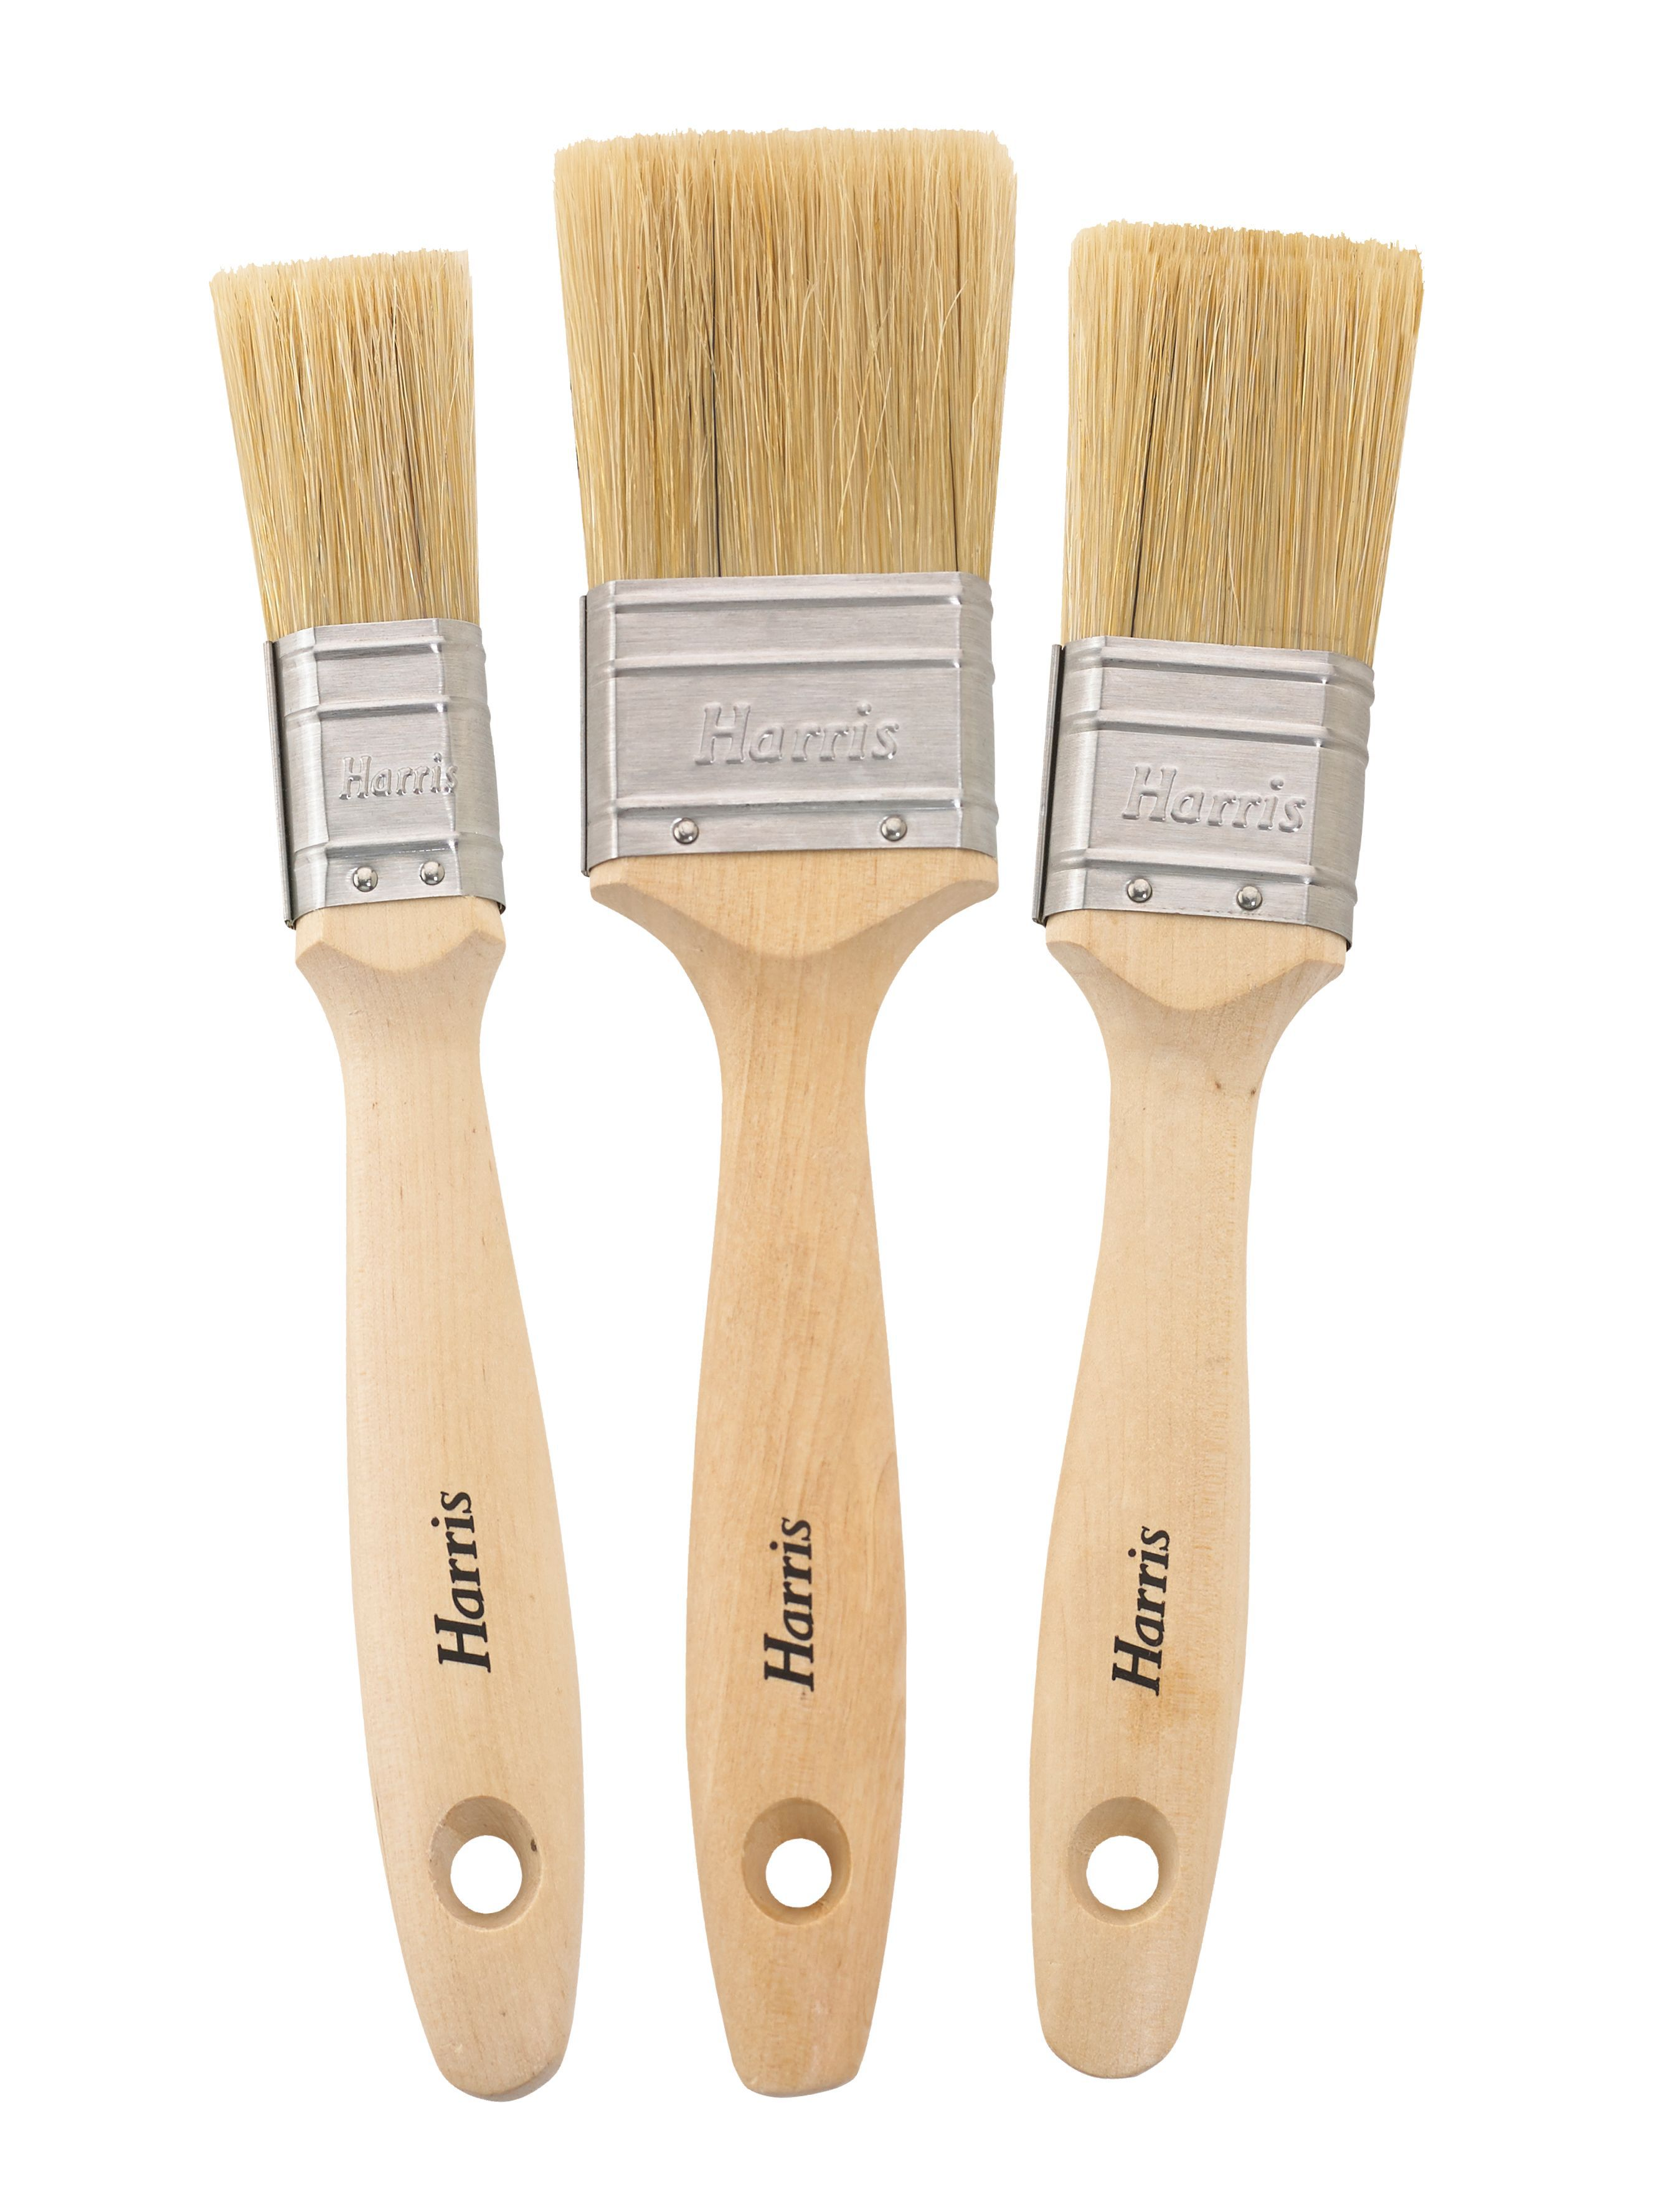 Harris Vanquish Soft Tipped Woodstain & Varnish Brush (w)1 inches, 1.5 inches, 2 inches, Pack Of 3